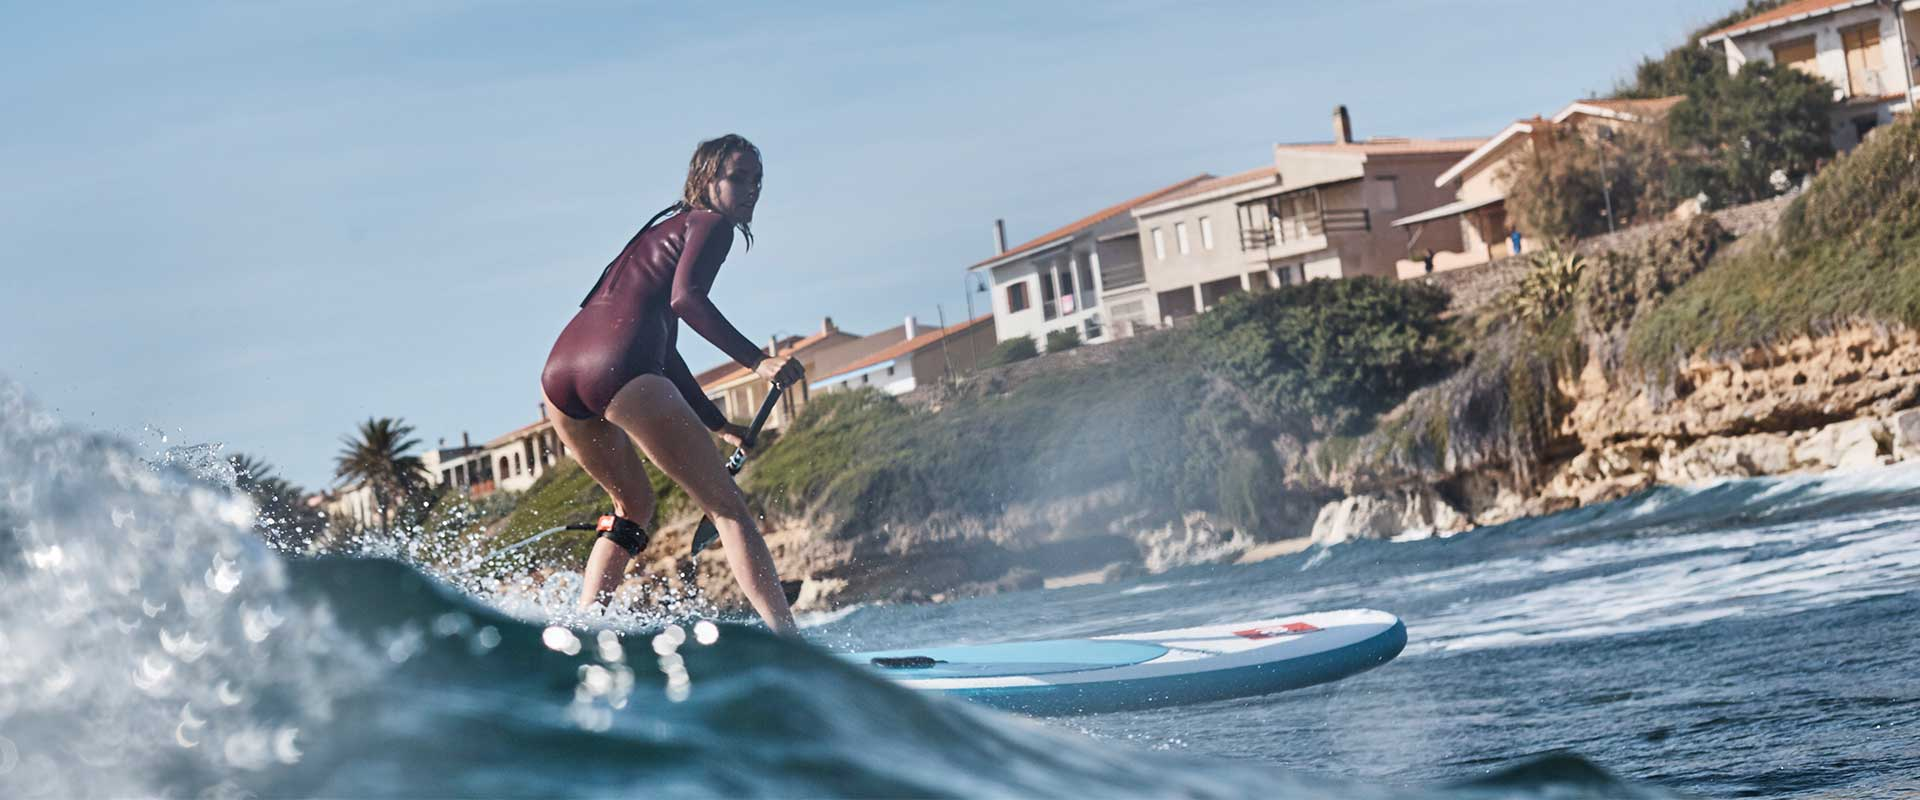 image of girl surfing on red paddle co inflatable whip board